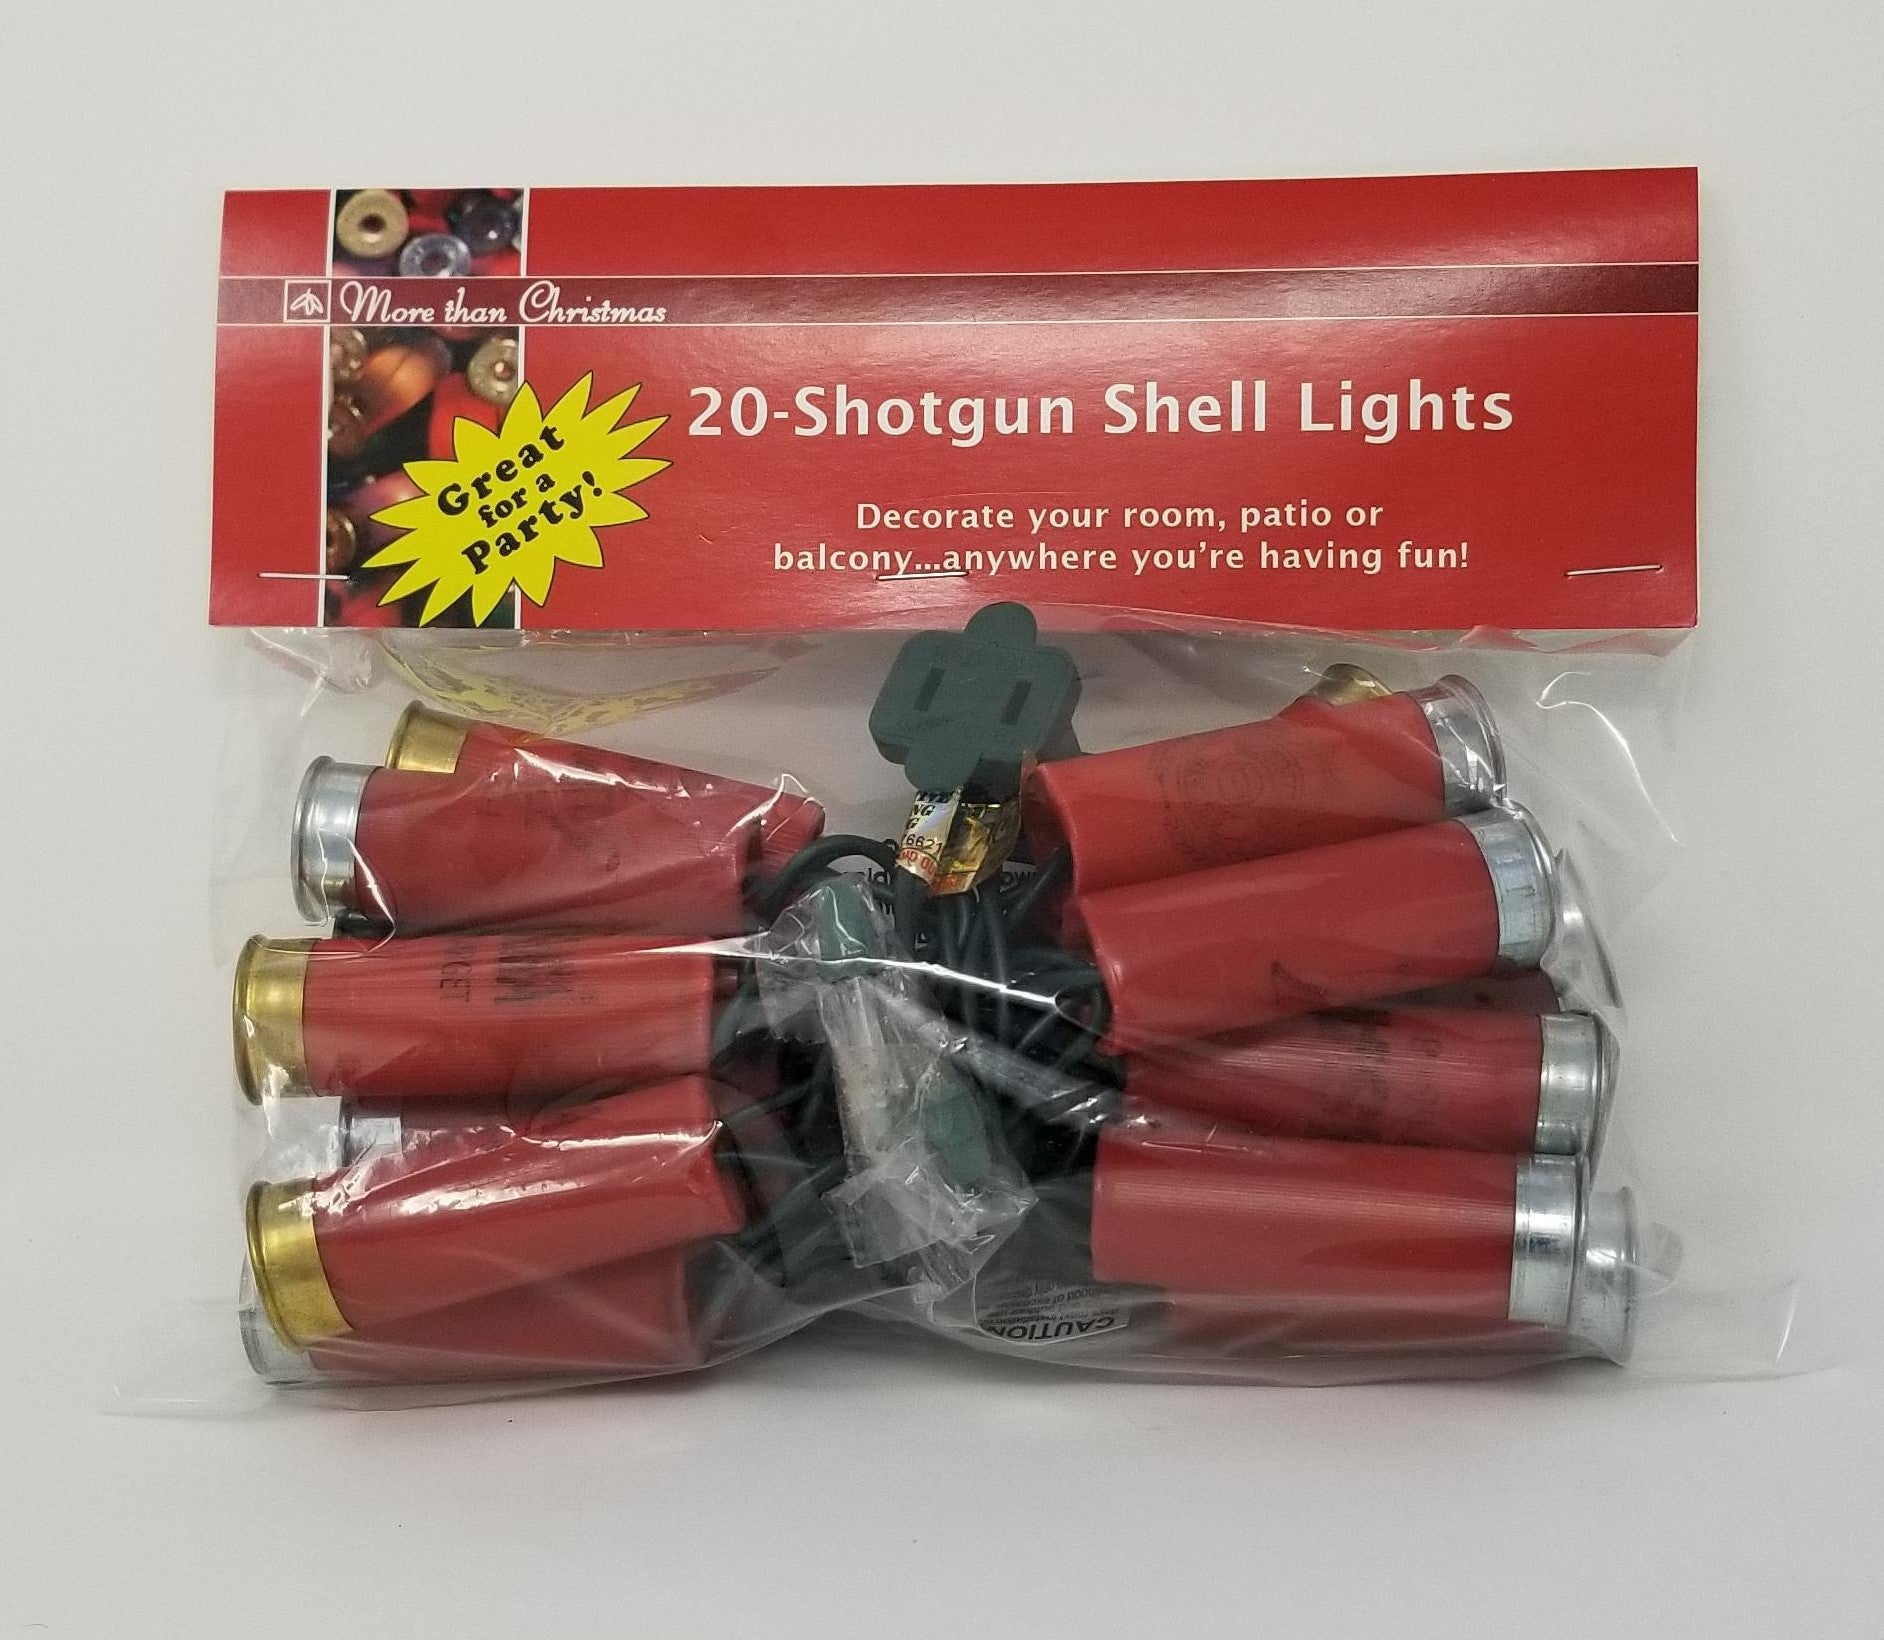 Light Set - Shotgun Shell Light String - 20 Lights - Red